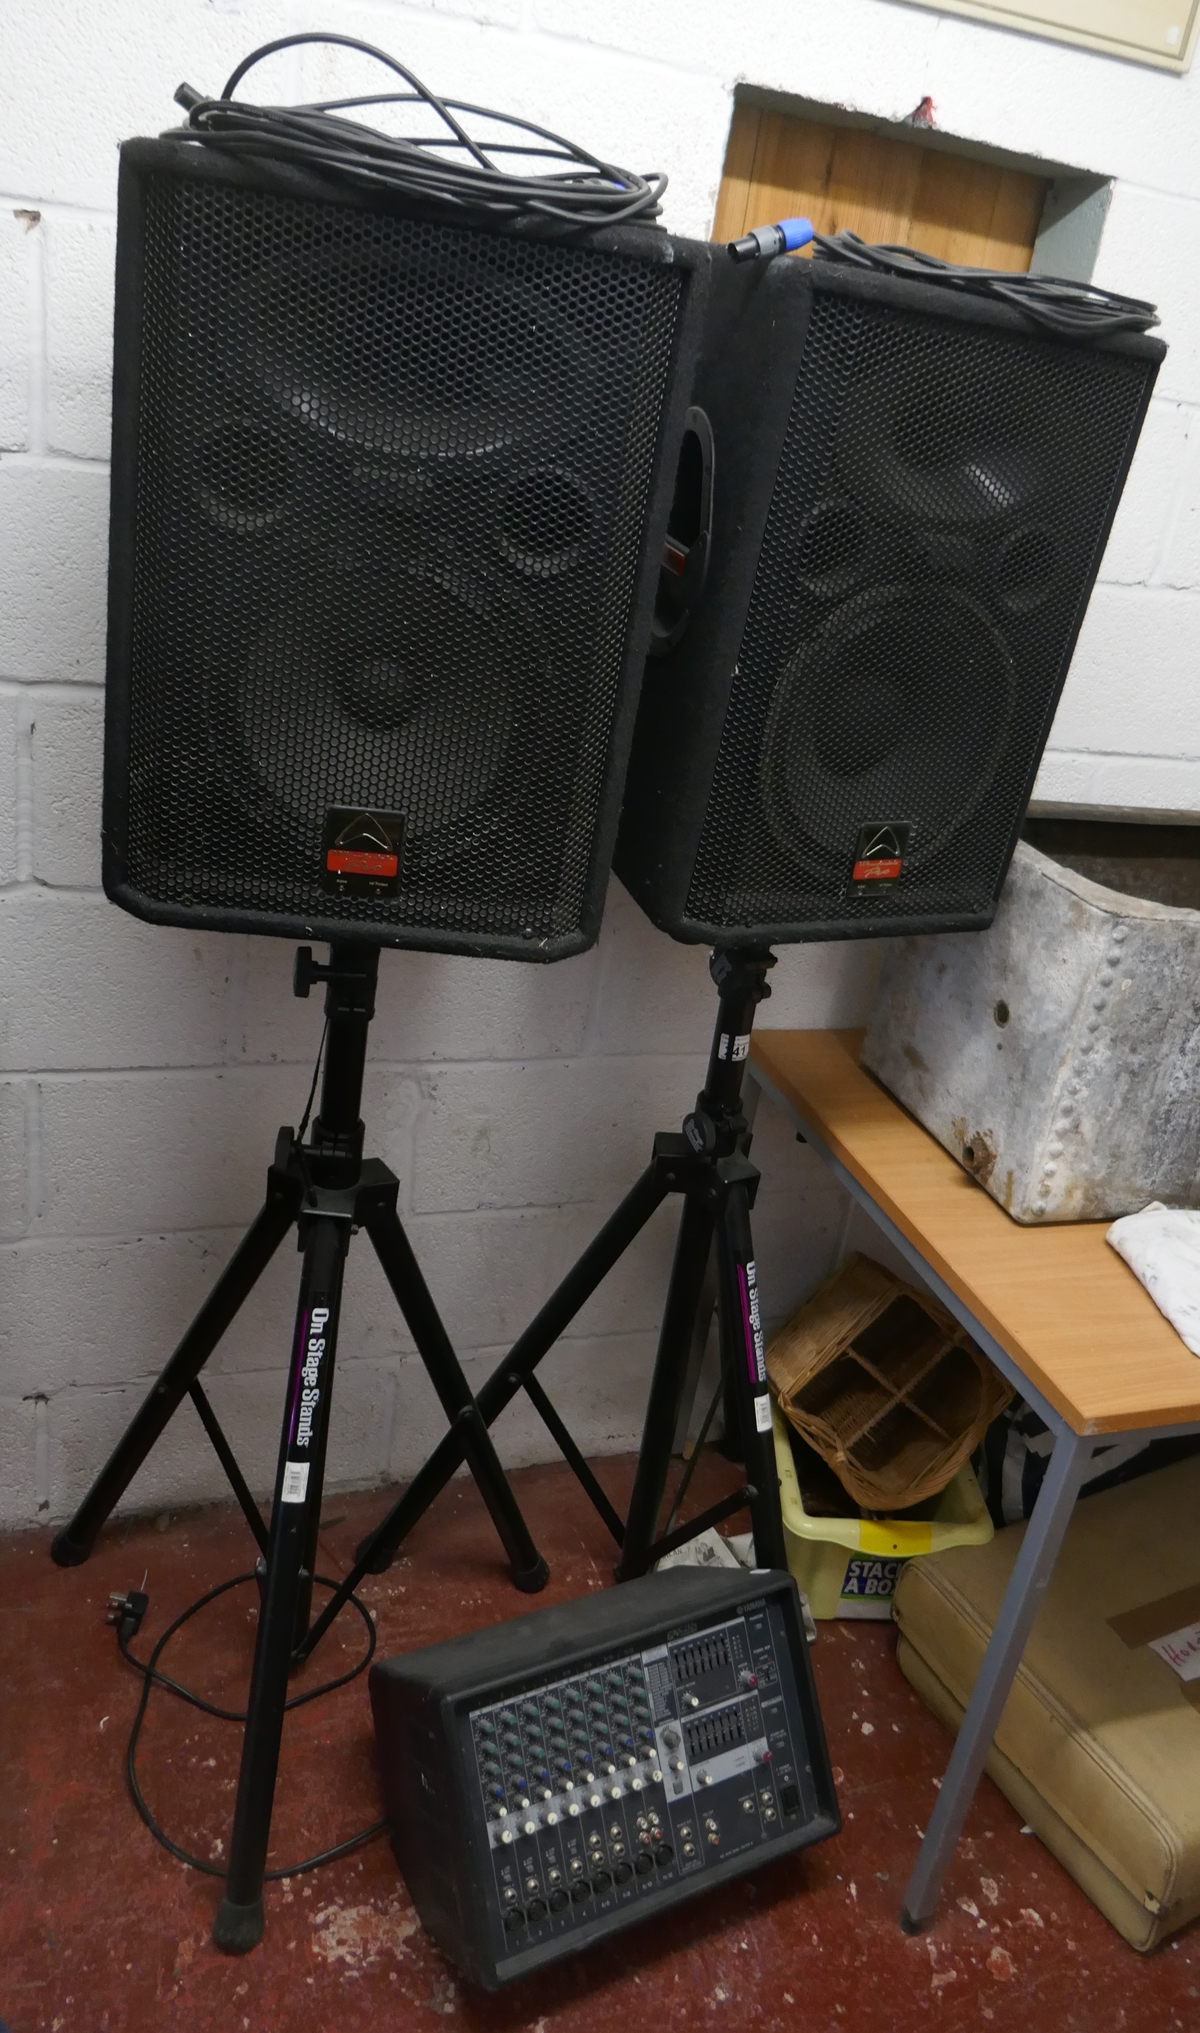 Good quality PA system in good order